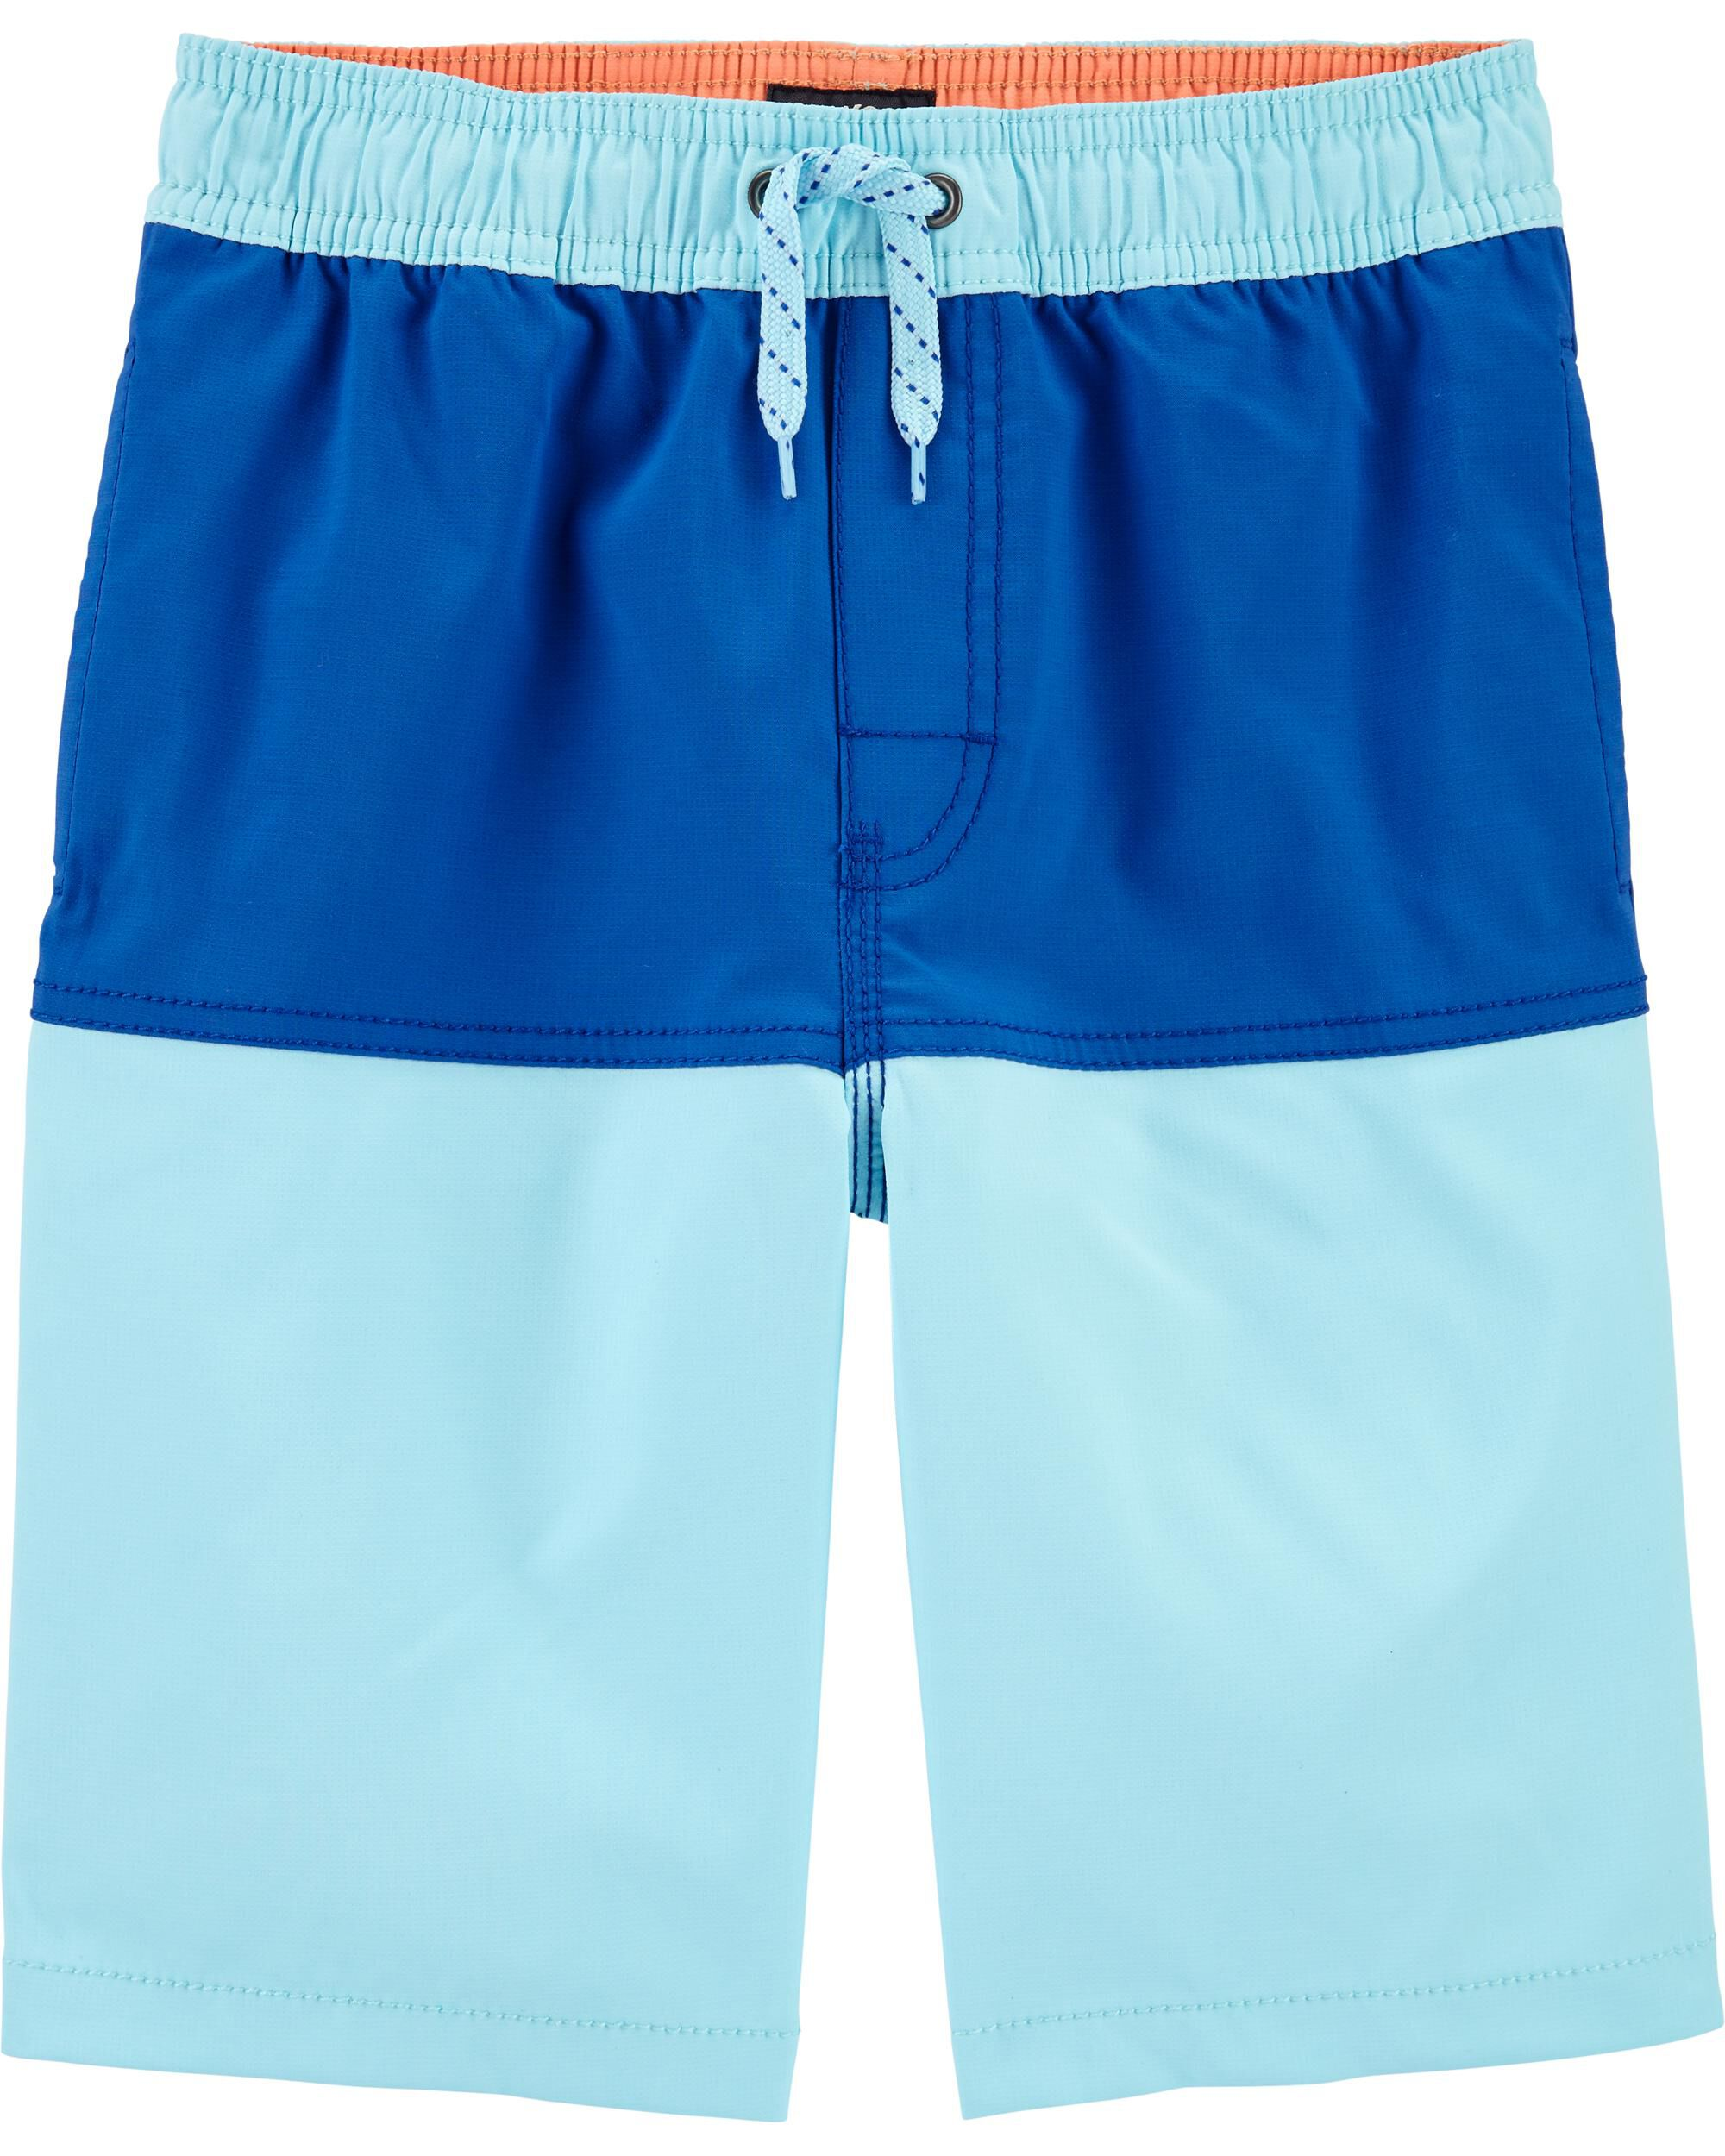 Colorblock Pool-to-Play Shorts